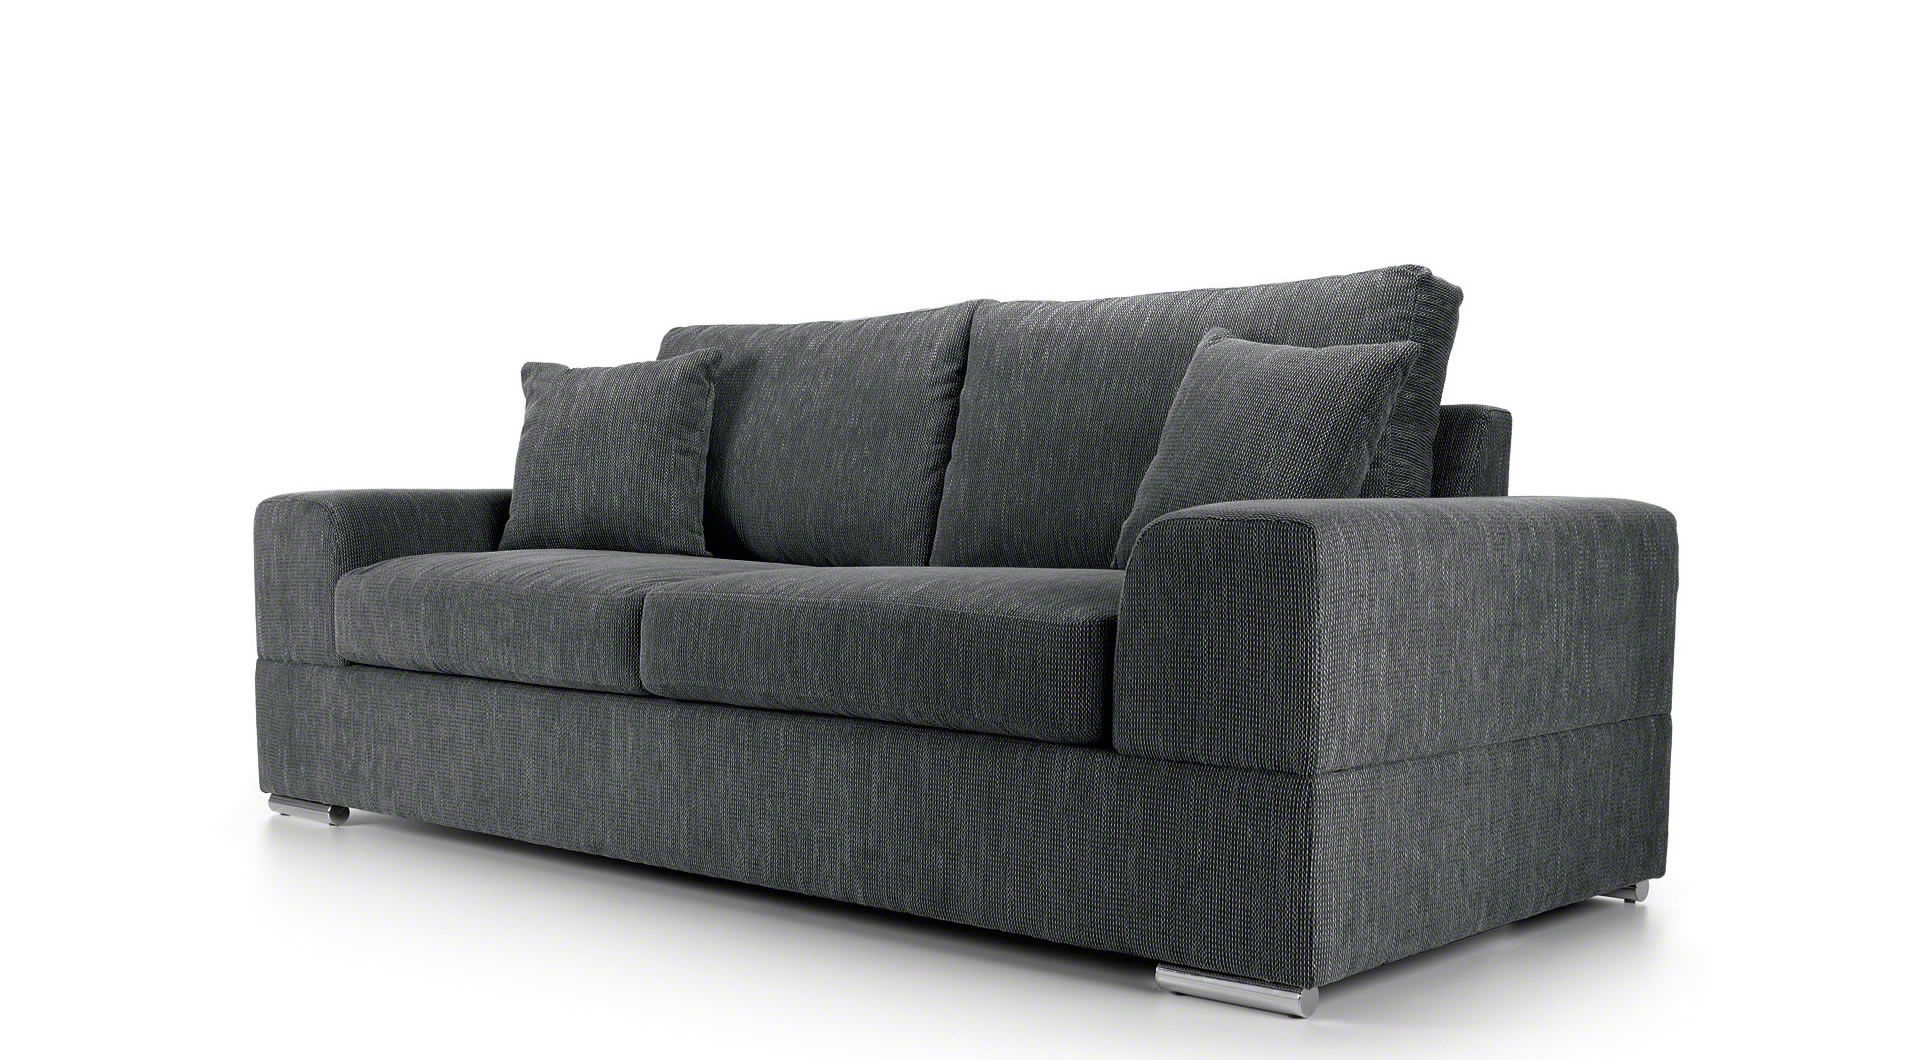 top high back sectional sofas online-Latest High Back Sectional sofas Décor